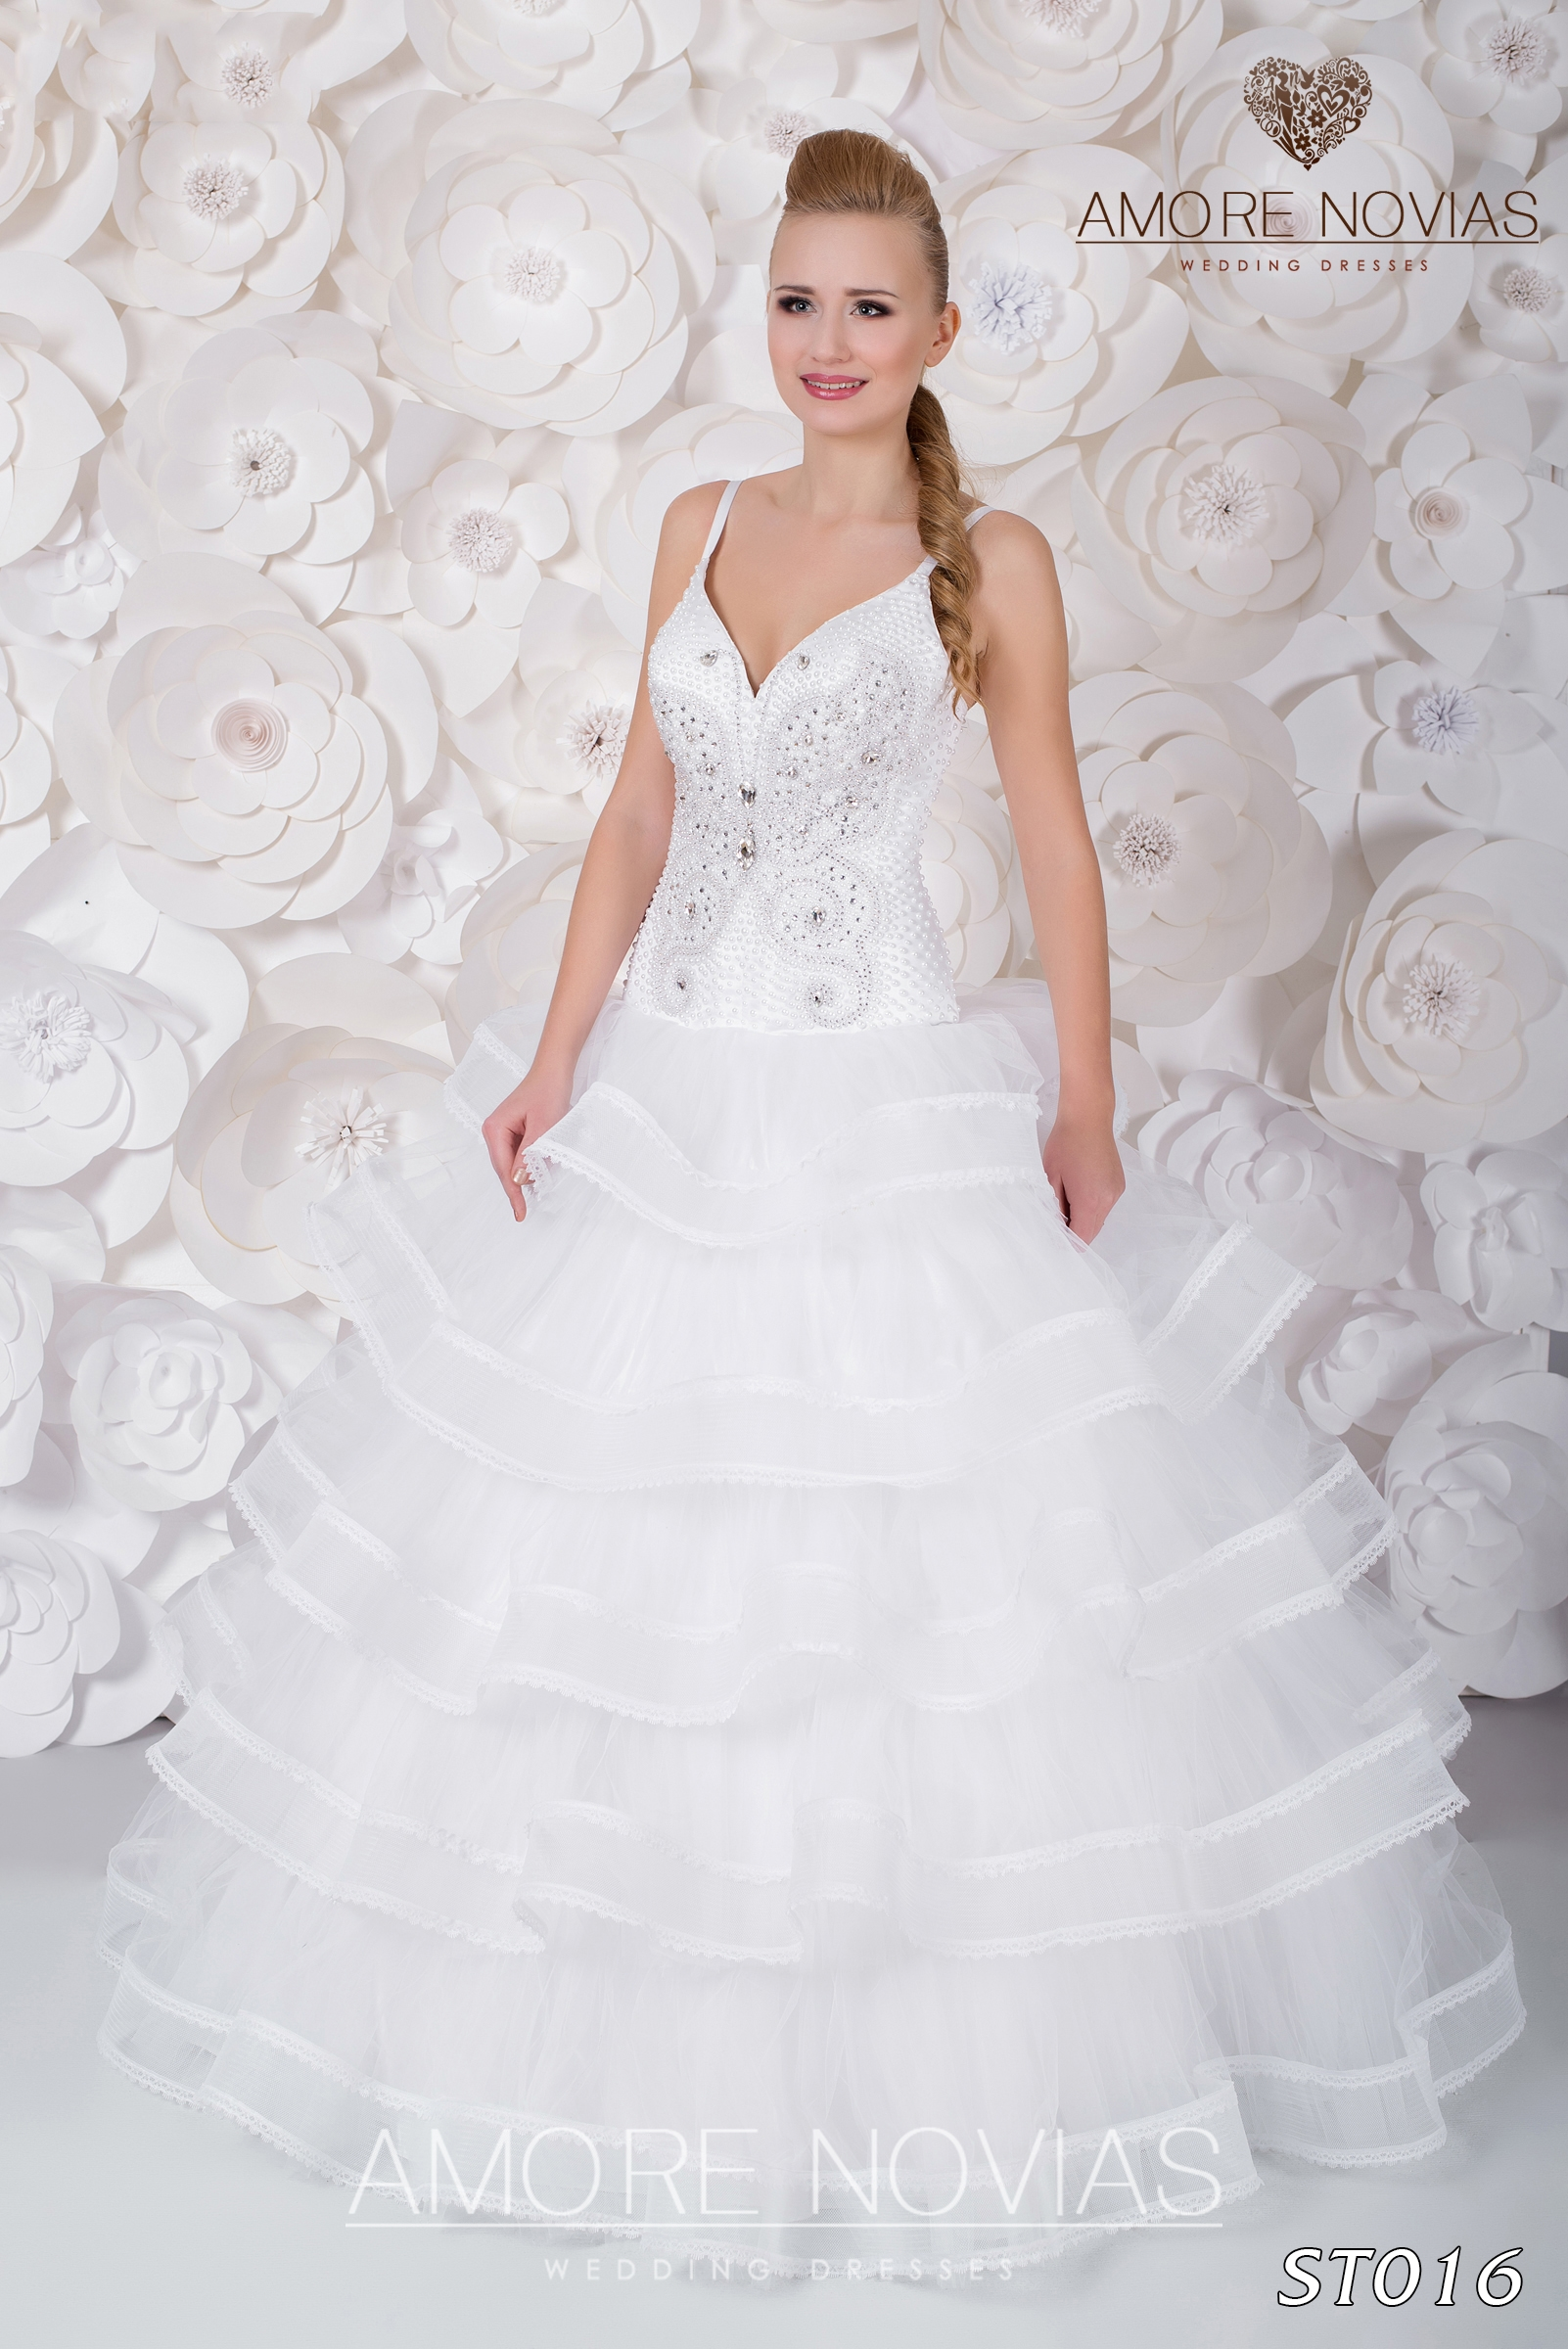 http://amore-novias.com/images/stories/virtuemart/product/st016.jpg